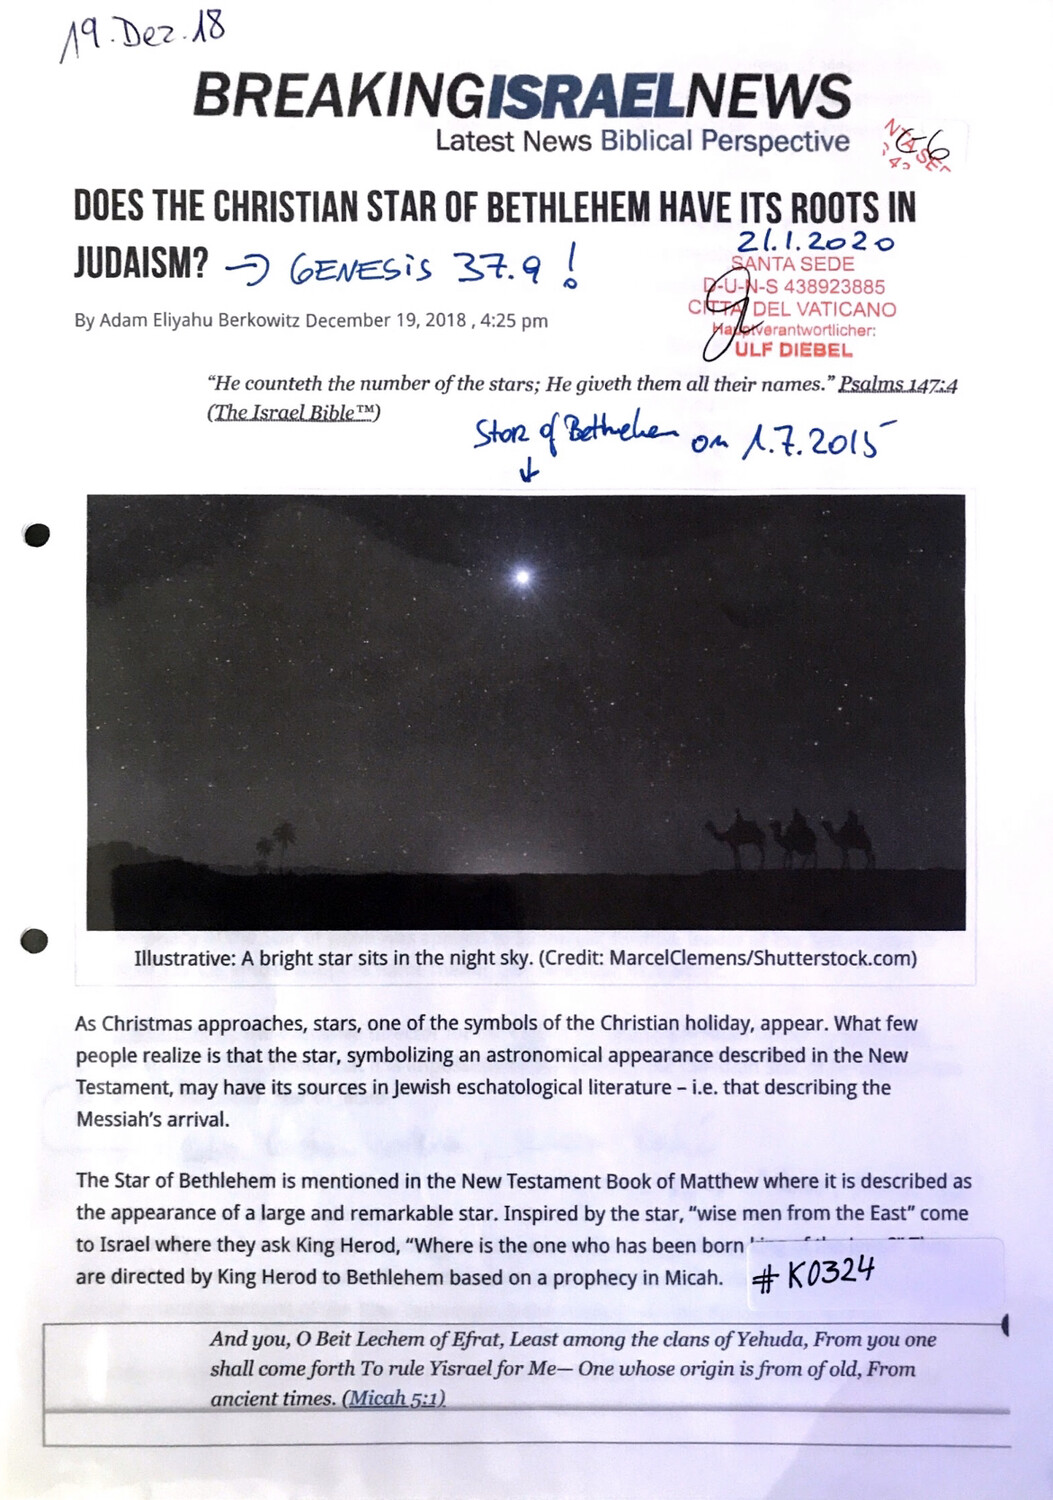 #K0324 l Breaking Israel News - Does the Christian star of Bethlehem have its roots in Judaism?